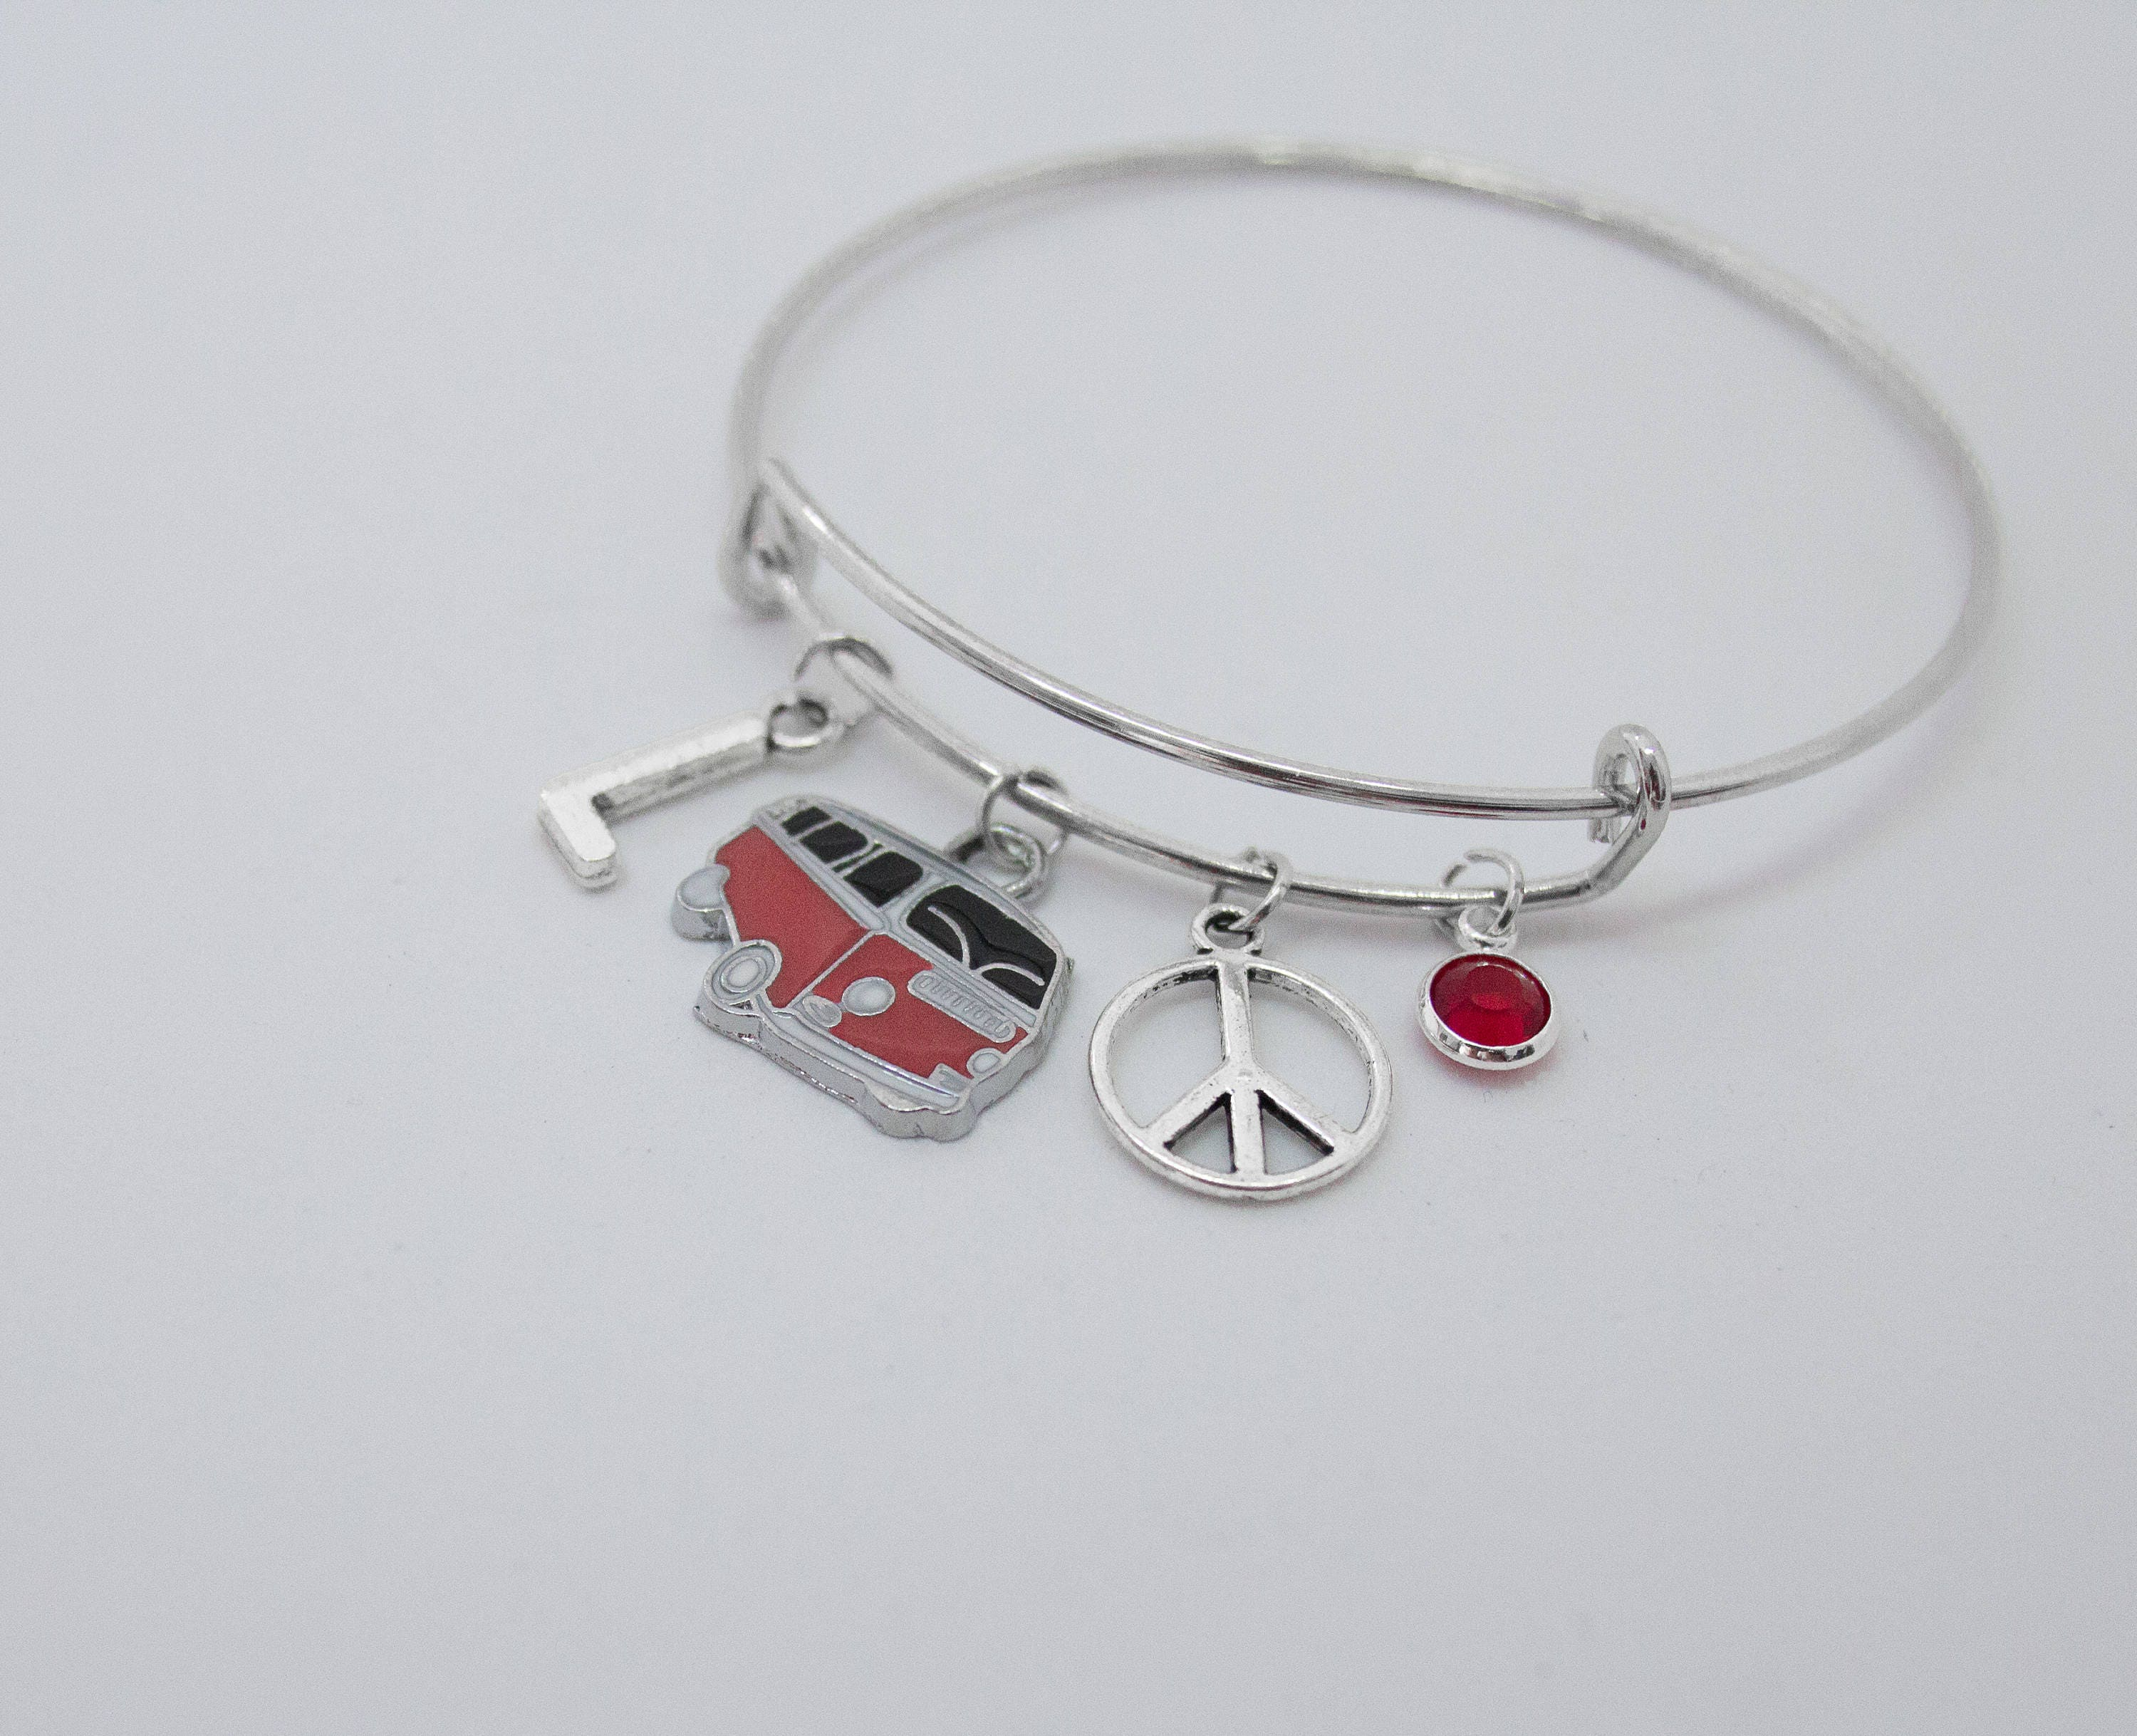 alef cz bracelets by paula evil eye sterling sign peace silver bracelet jewelry bet